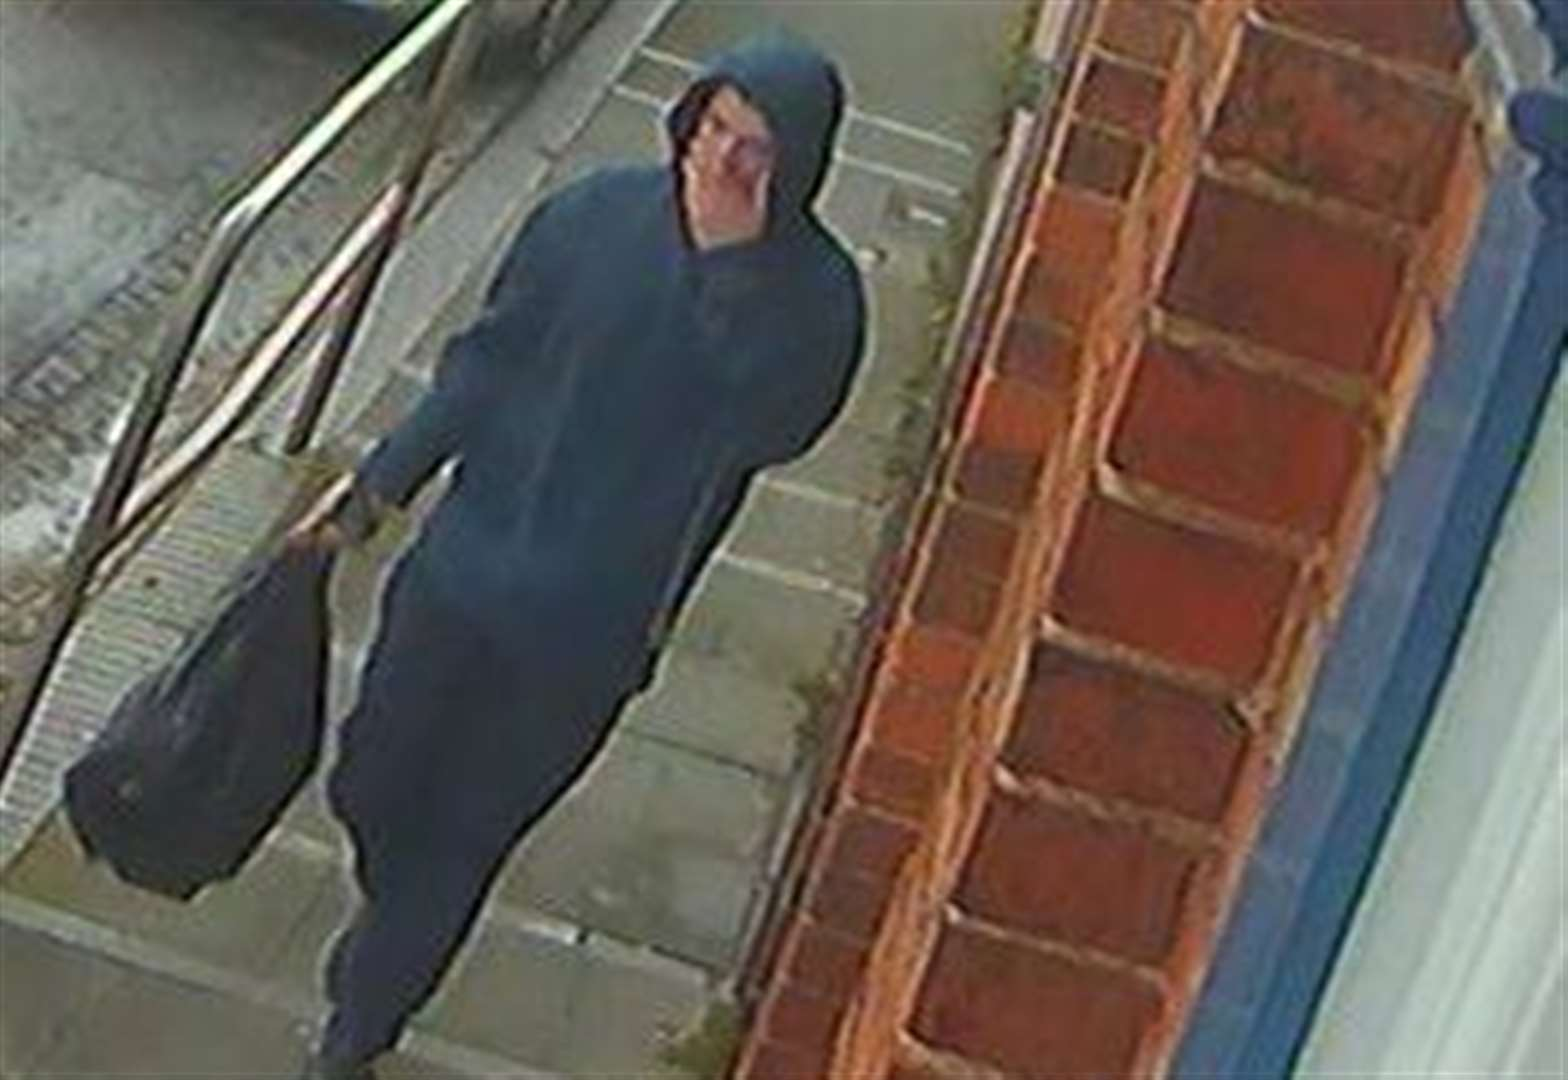 Police appeal after burglary